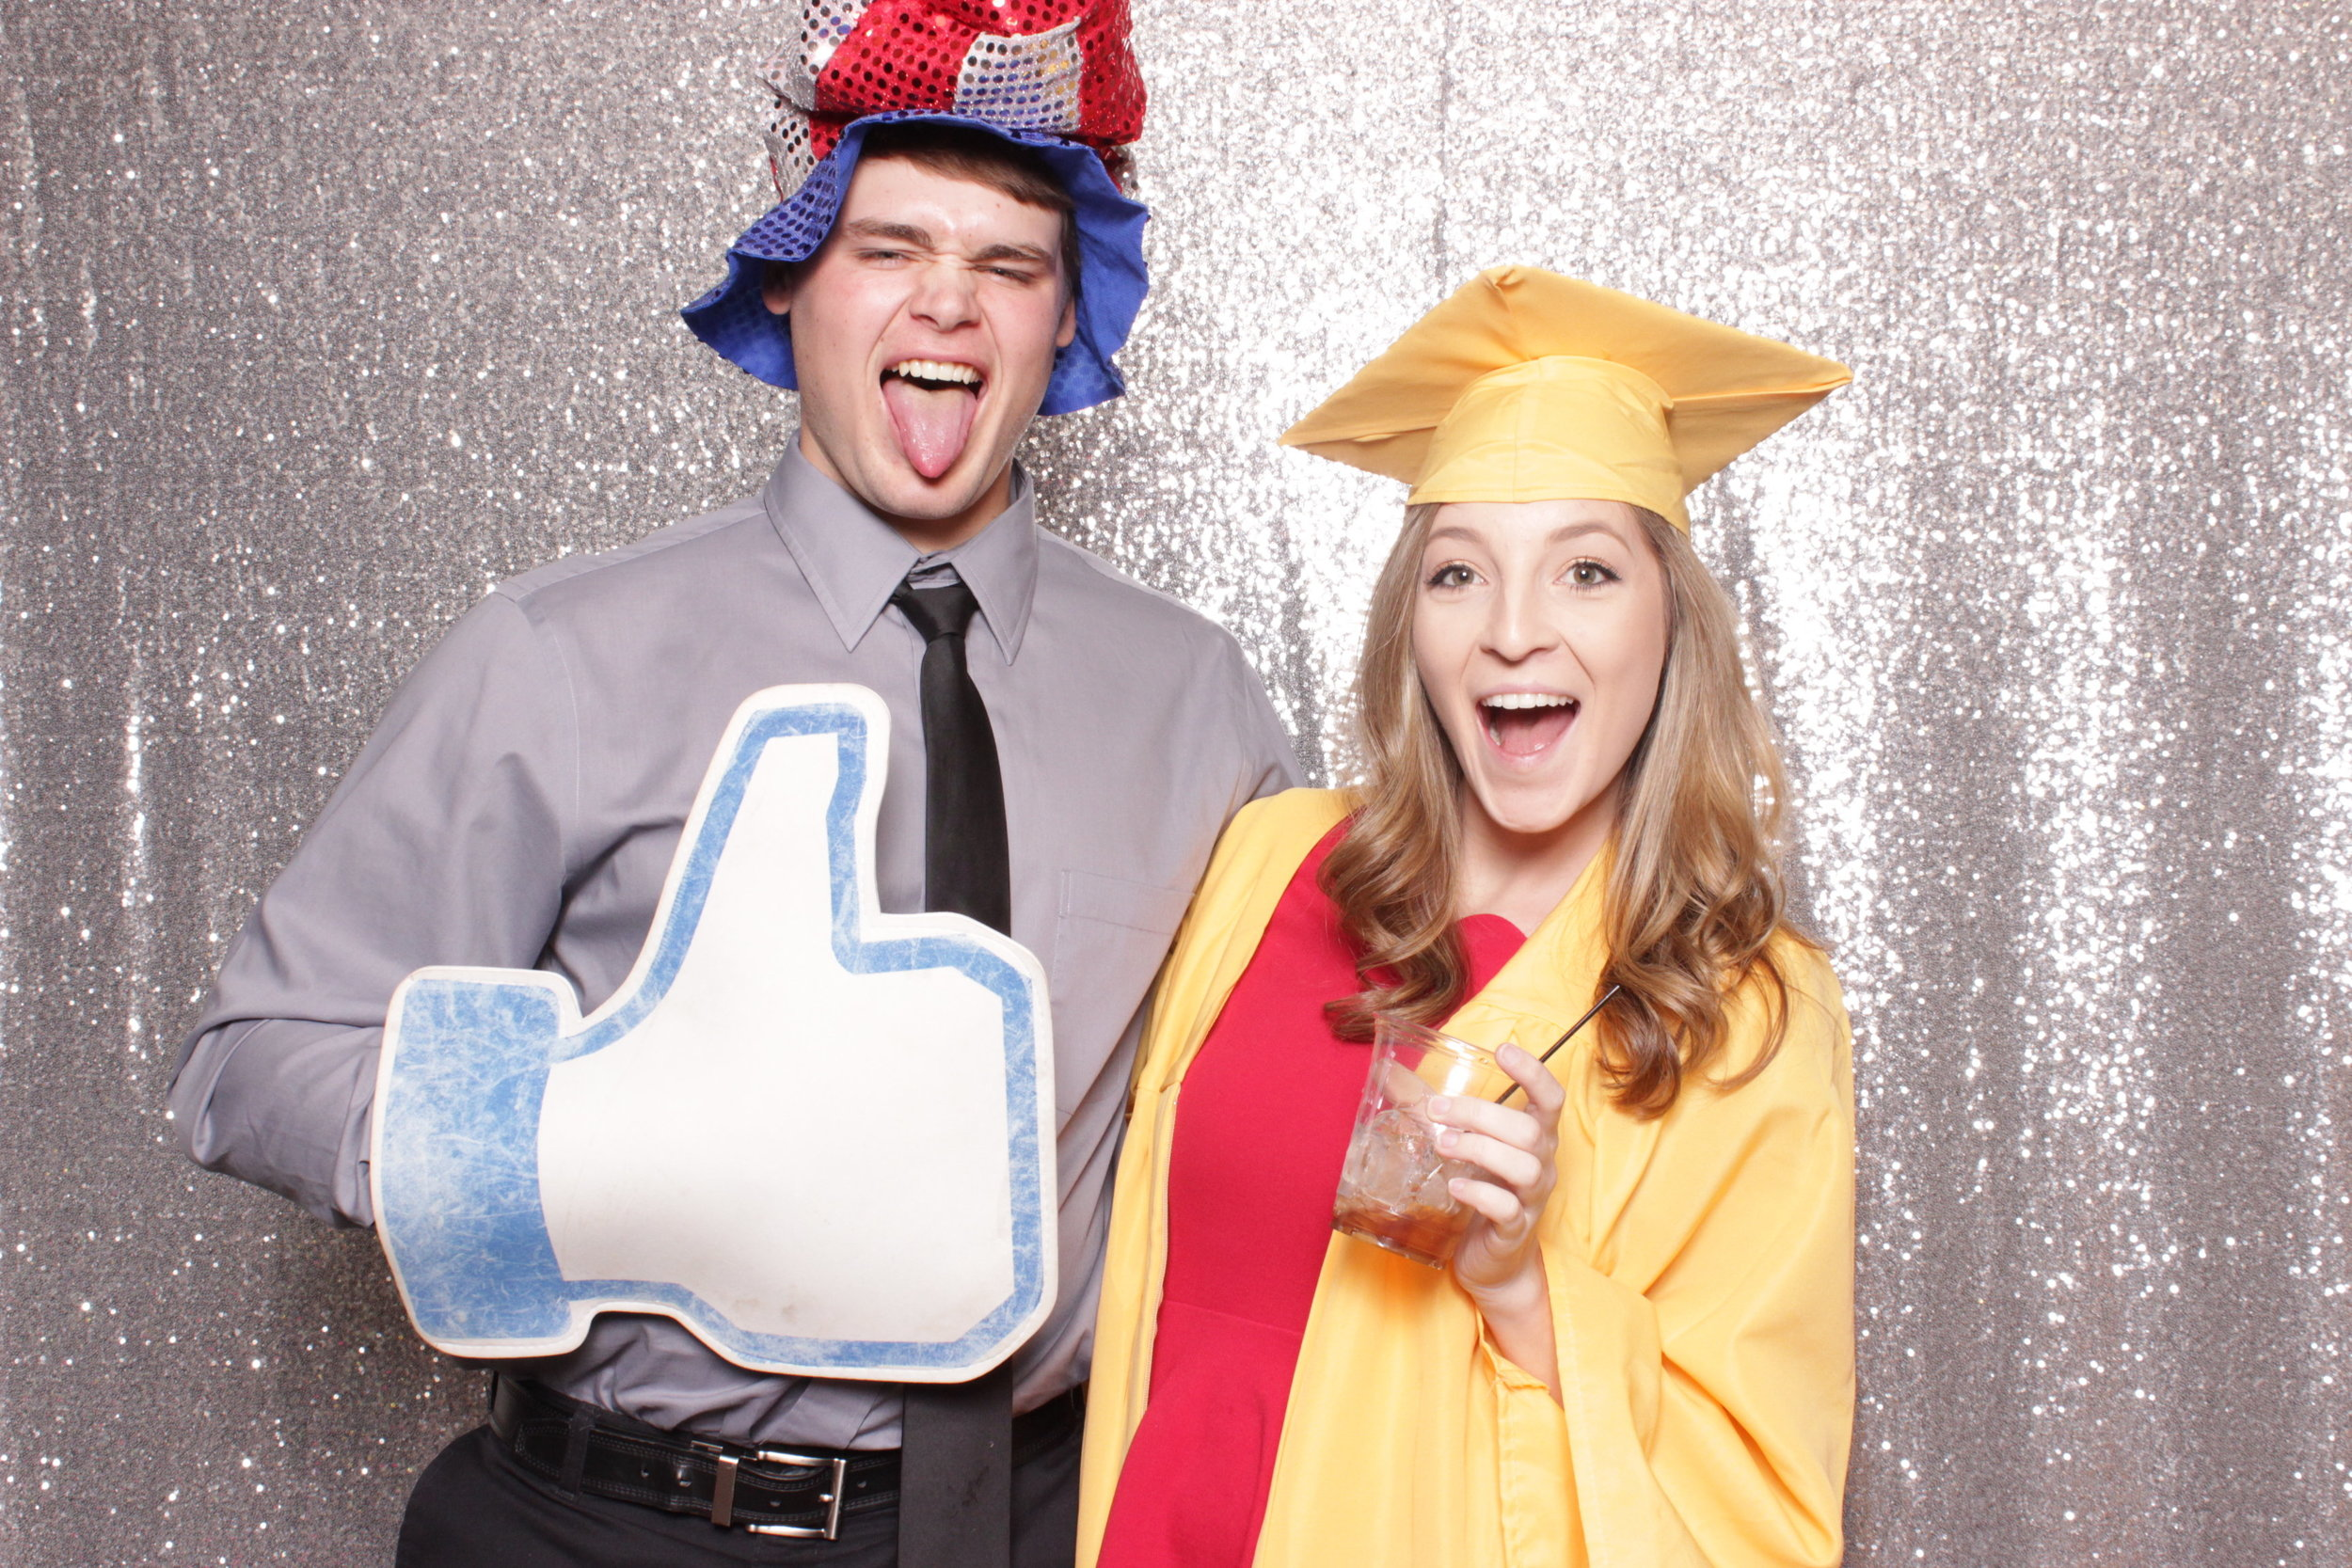 Chico-photo-booth-rental-event-ideas